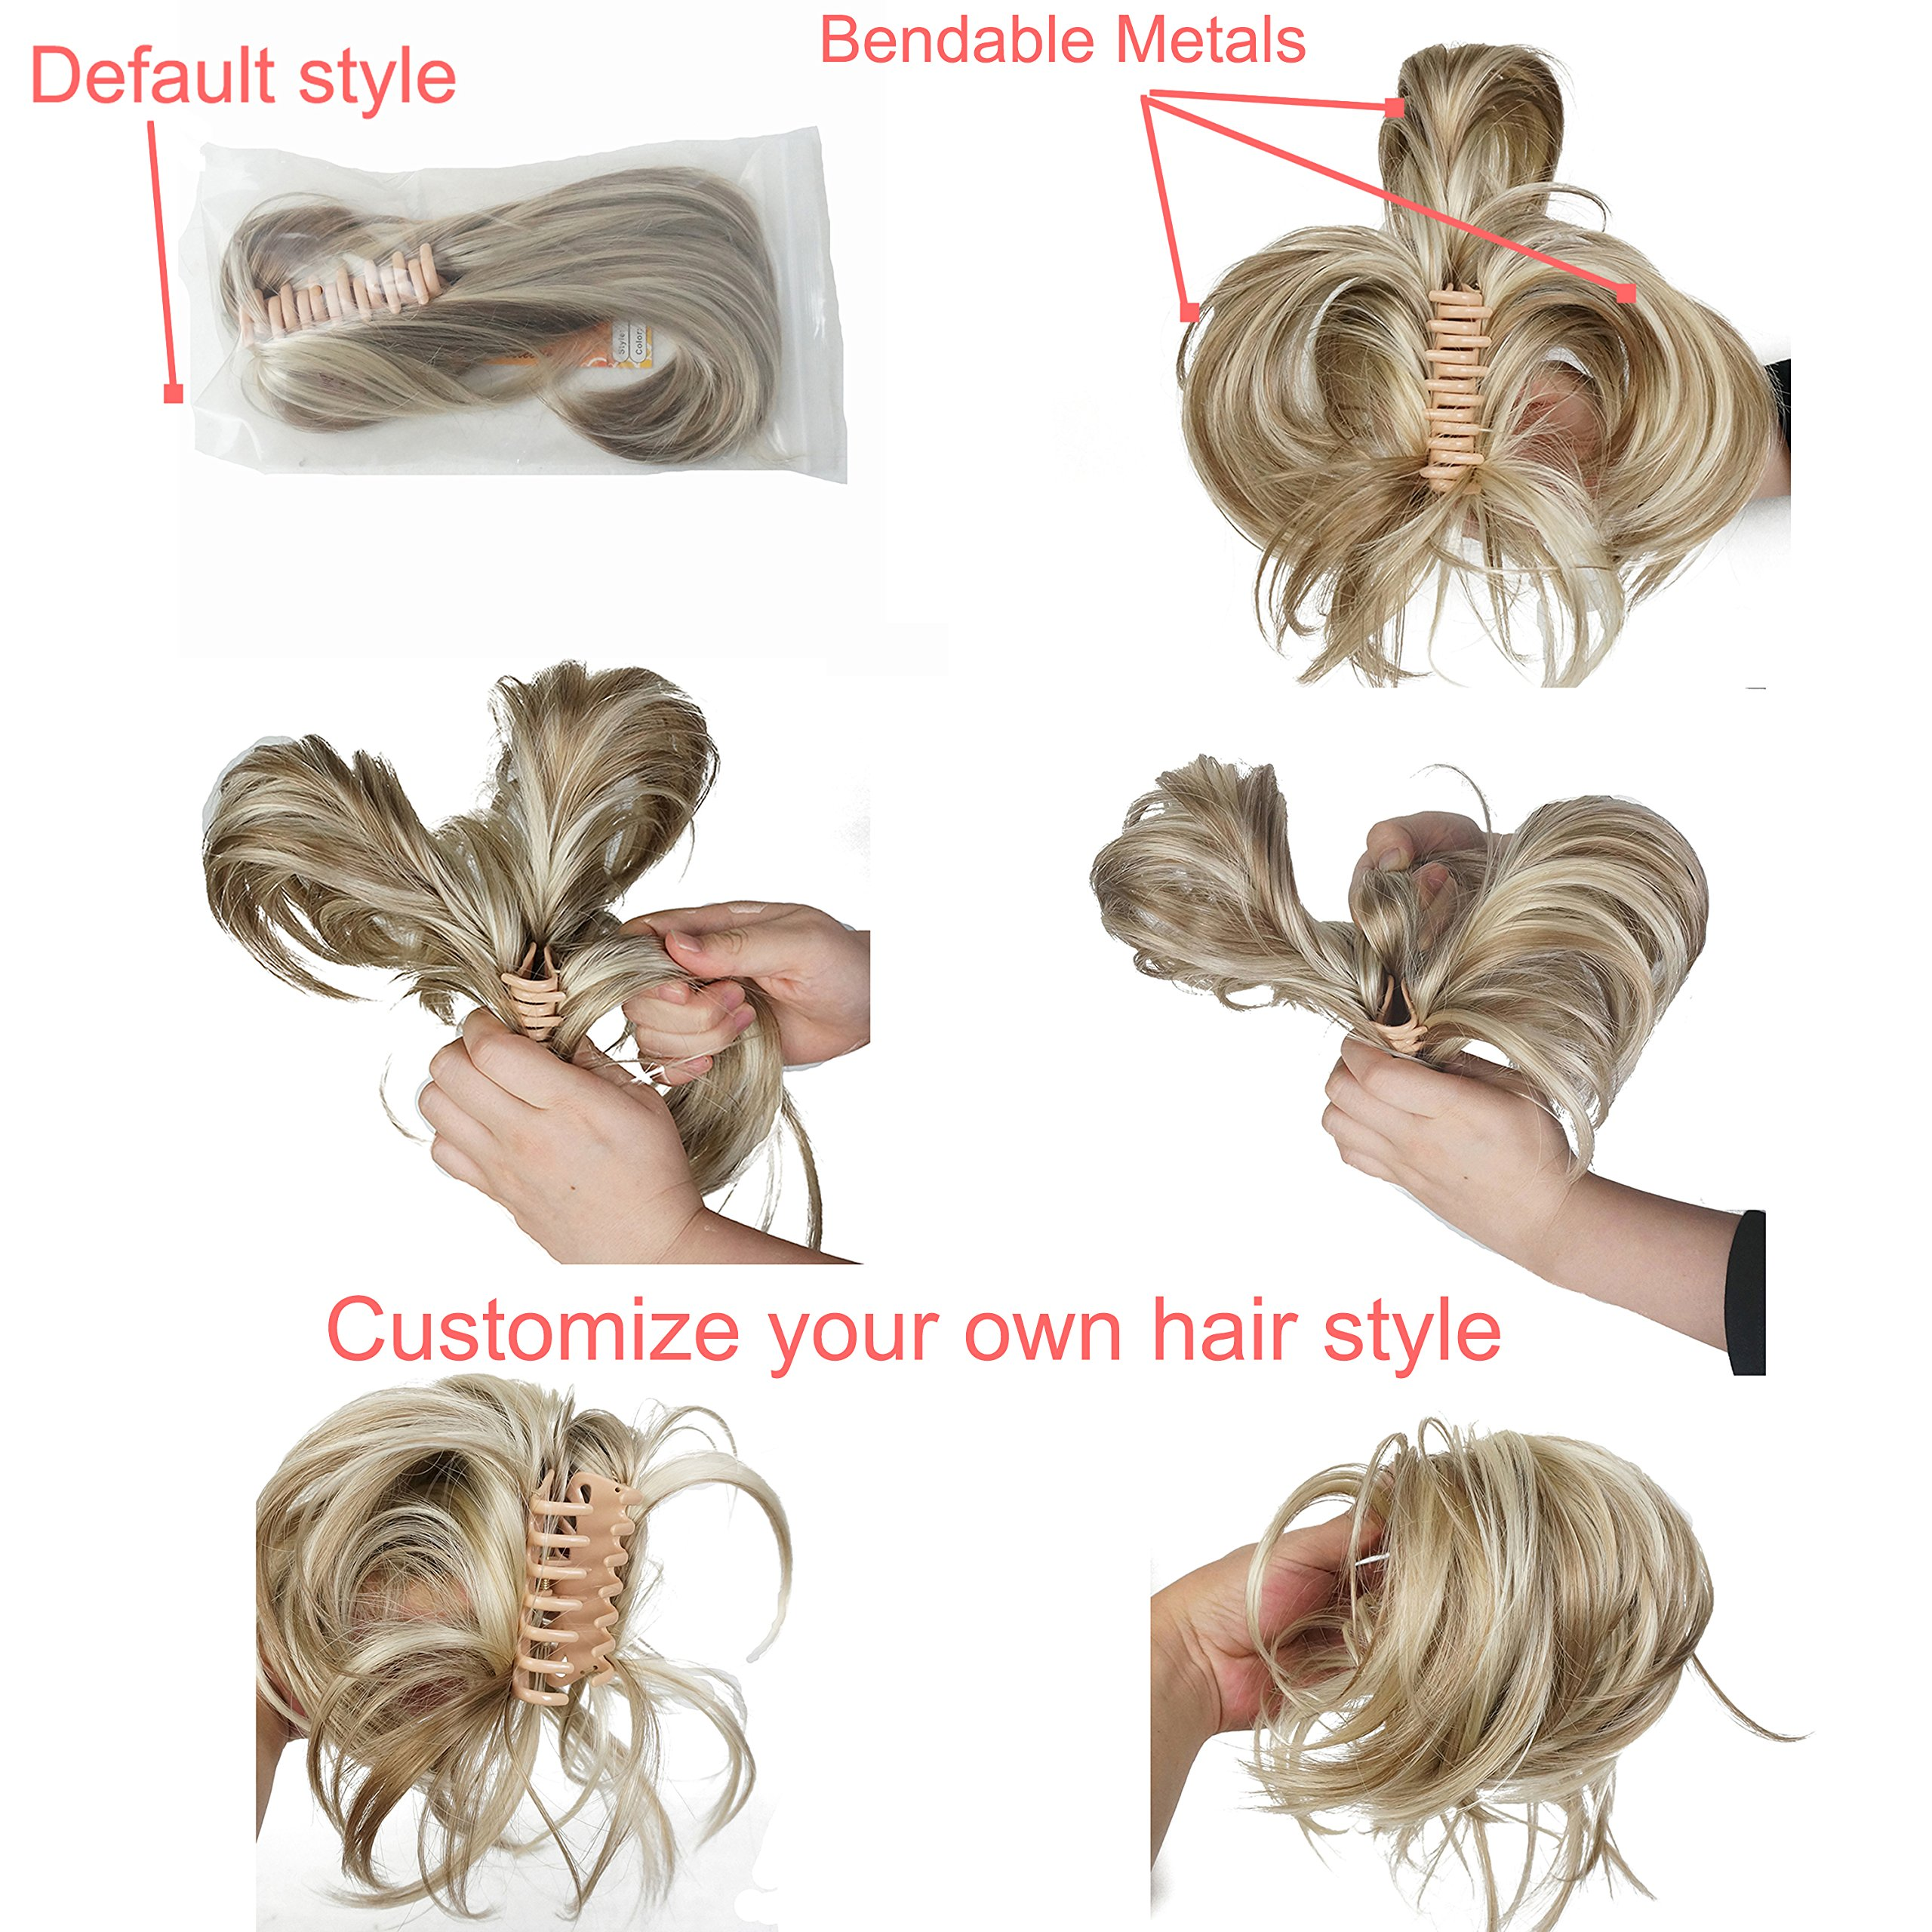 Lydell Adjustable Messy Style Ponytail Hair Extension Synthetic Hairpiece with Jaw Claw Amzing Shape For You #AB461 Brown Highlighted by Lydell